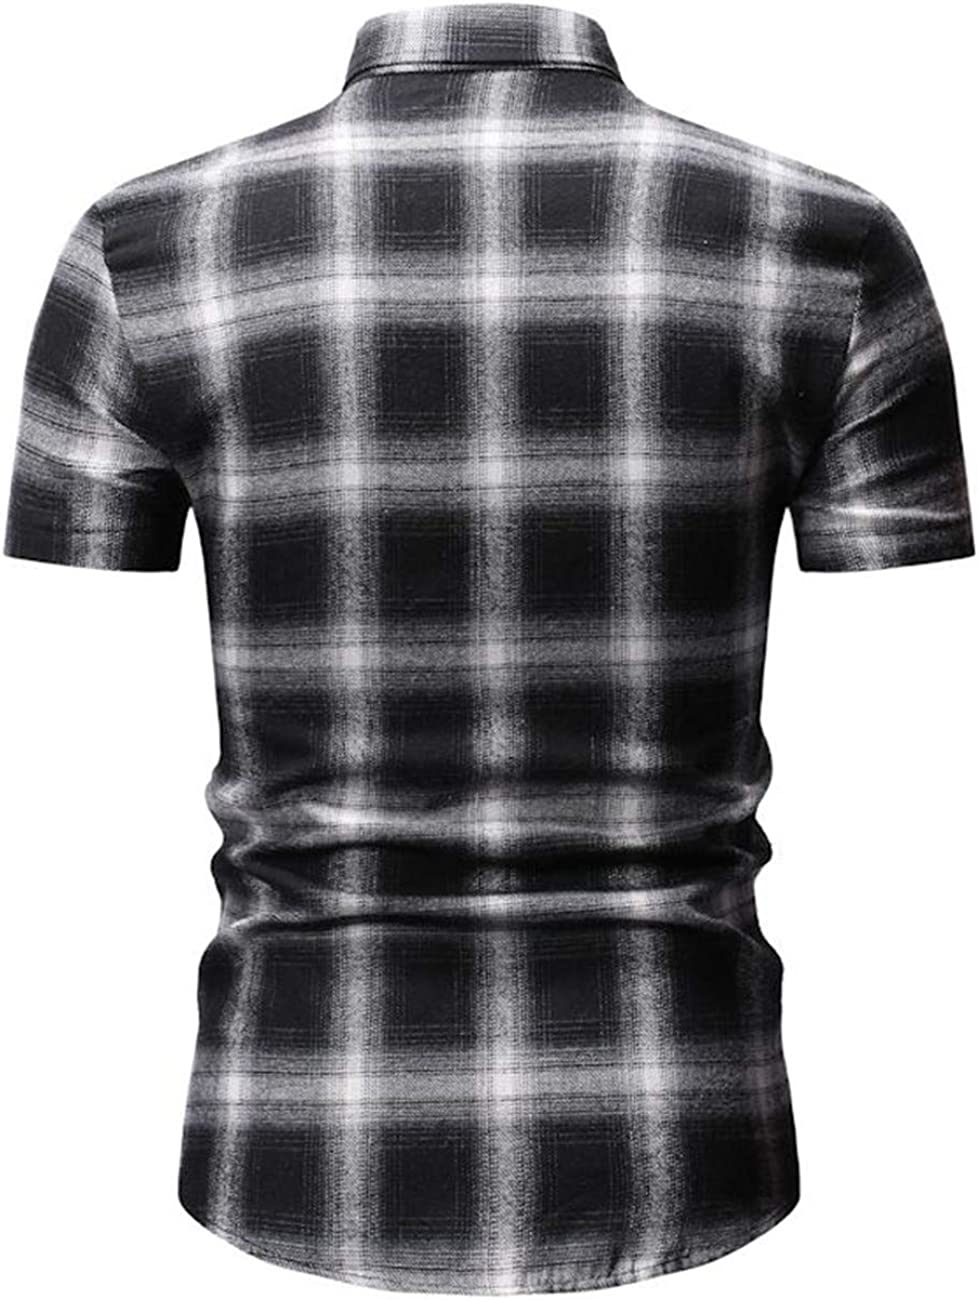 Mens Short-Sleeved Leisure and Fashion3 Color Button Down Checked Shirt